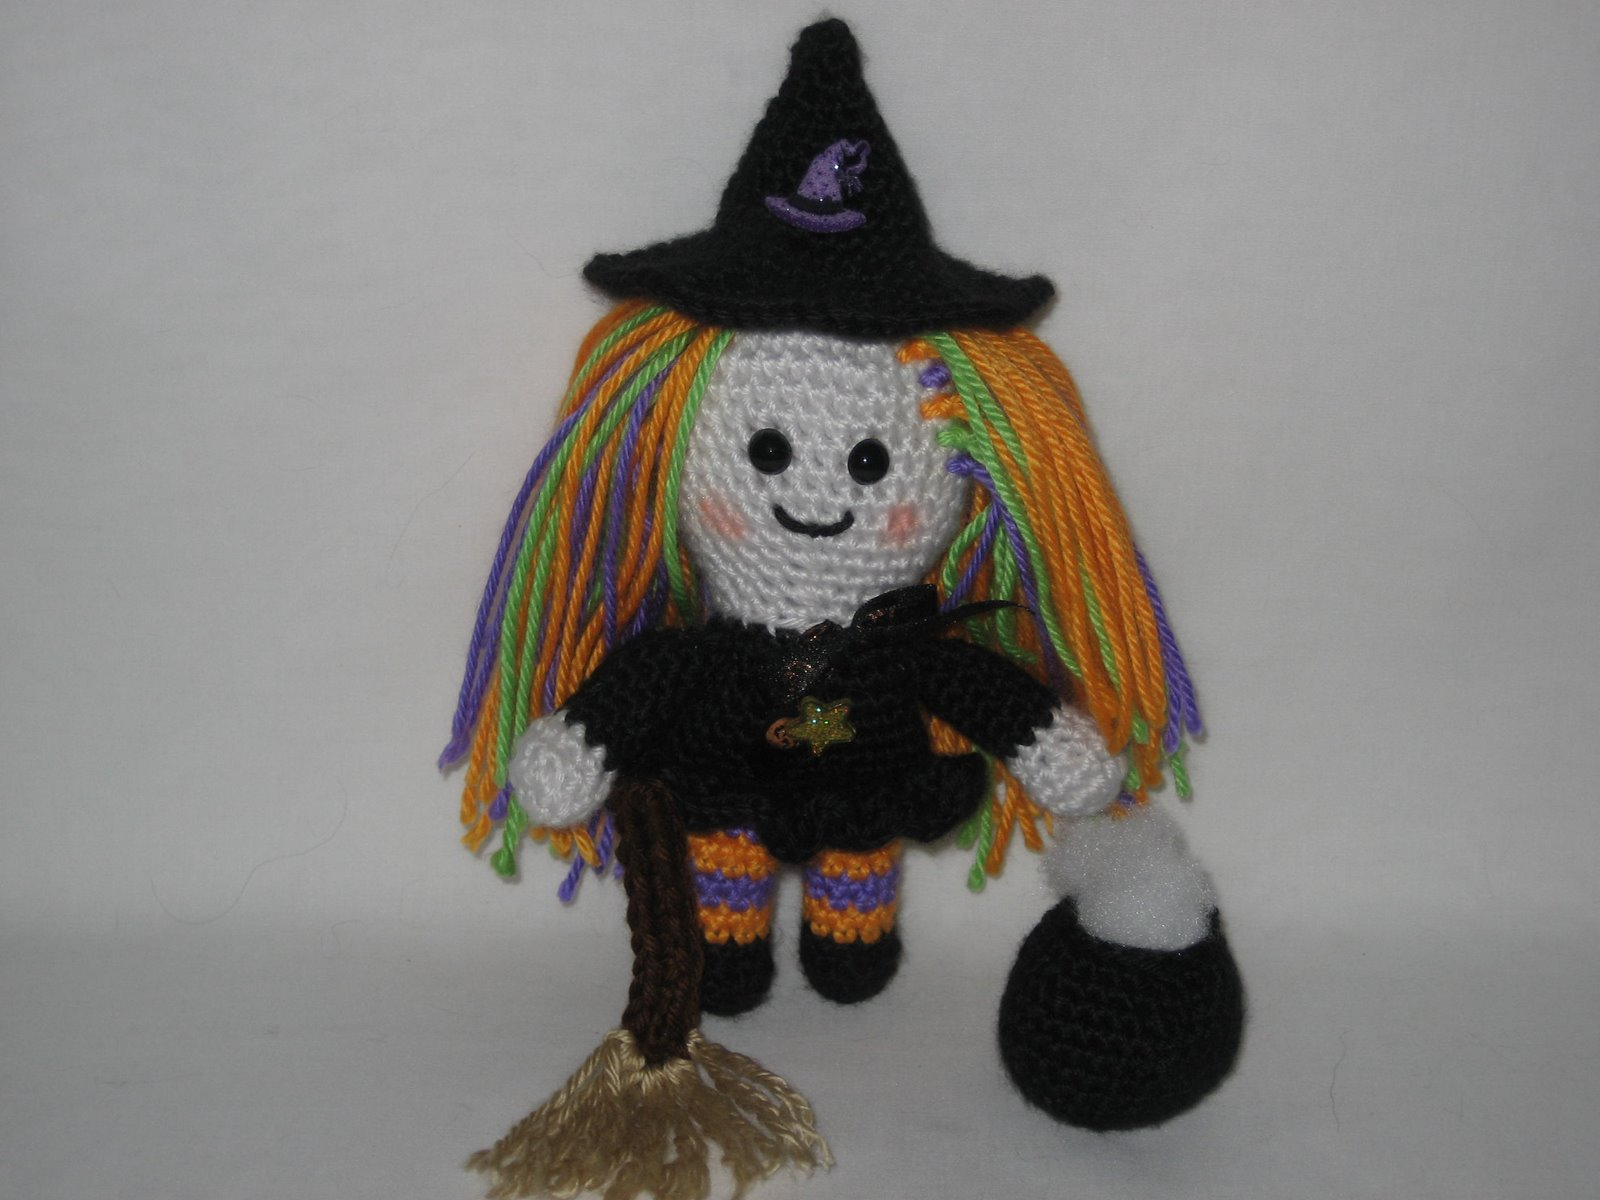 Free Amigurumi Patterns Halloween : 2000 Free Amigurumi Patterns: Witch